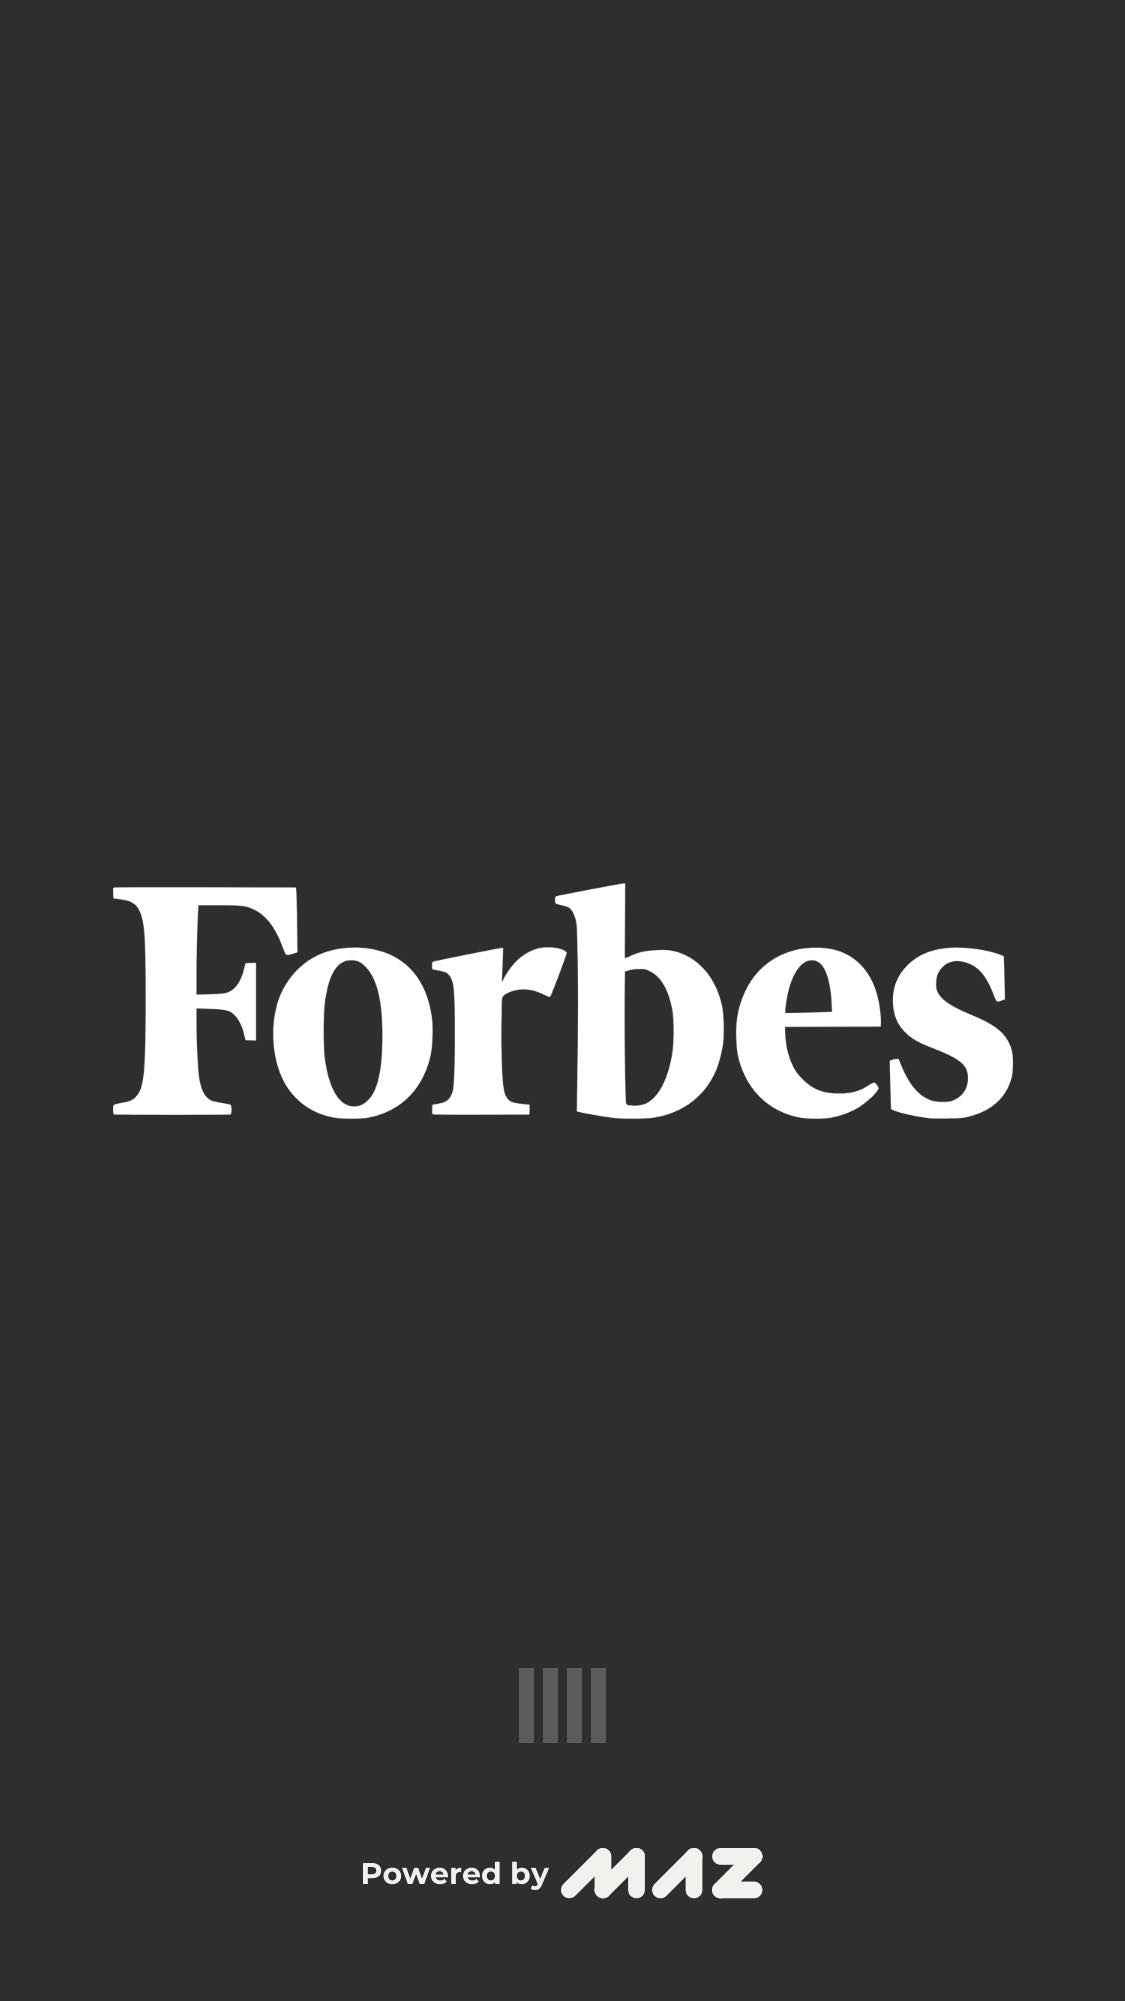 Loading on iOS by Forbes from UIGarage